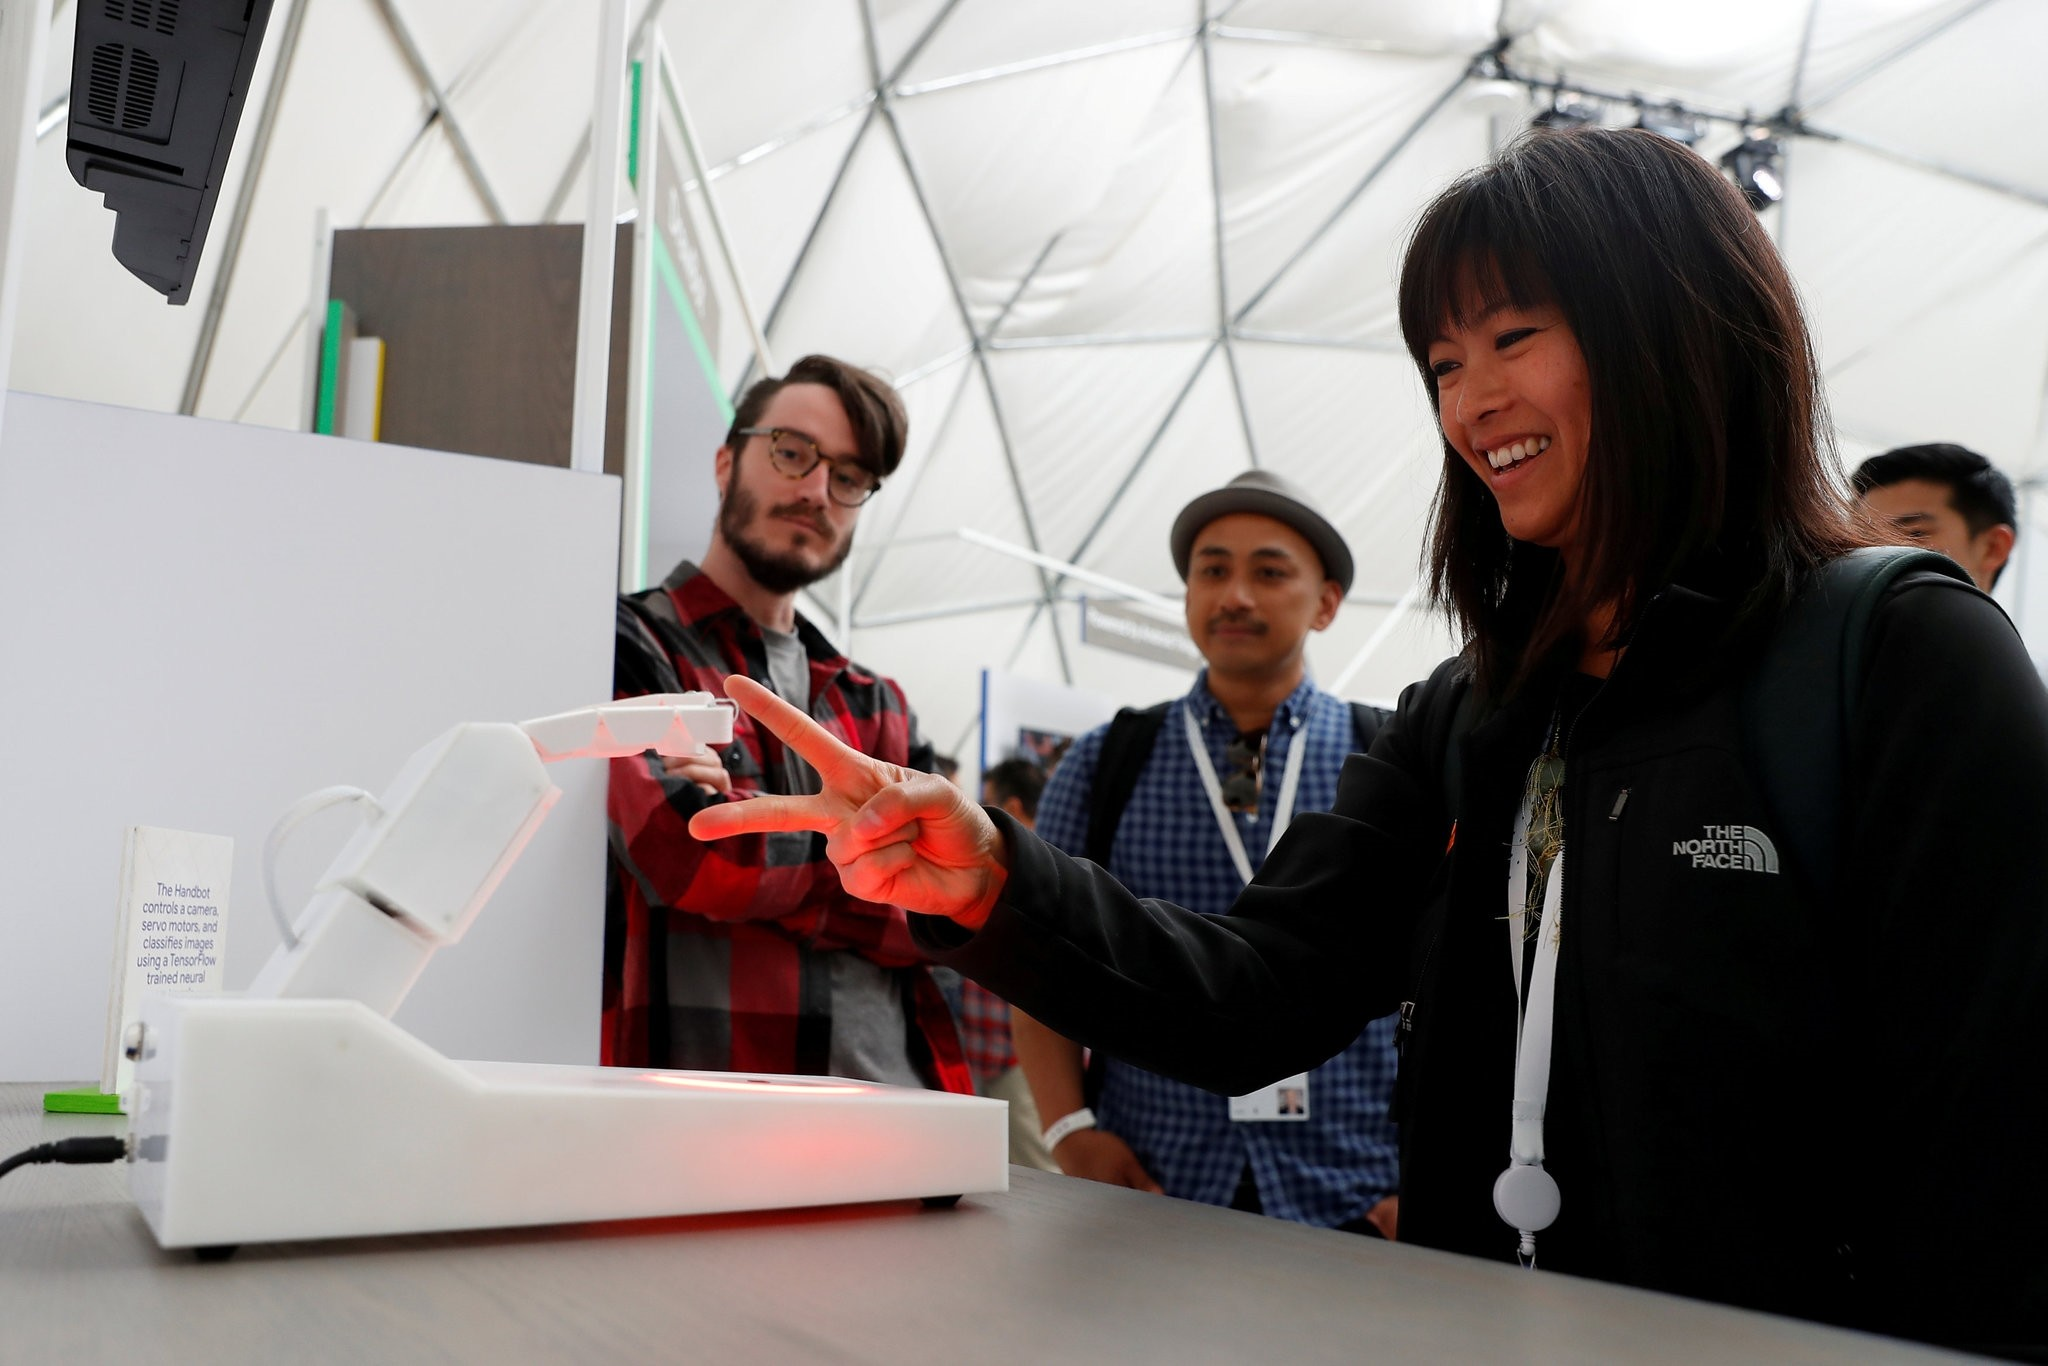 An attendee competes in a game of rock, paper, scissors against a Handbot robot during the annual Google I/O developers conference in Mountain View, California, May 8, 2018.